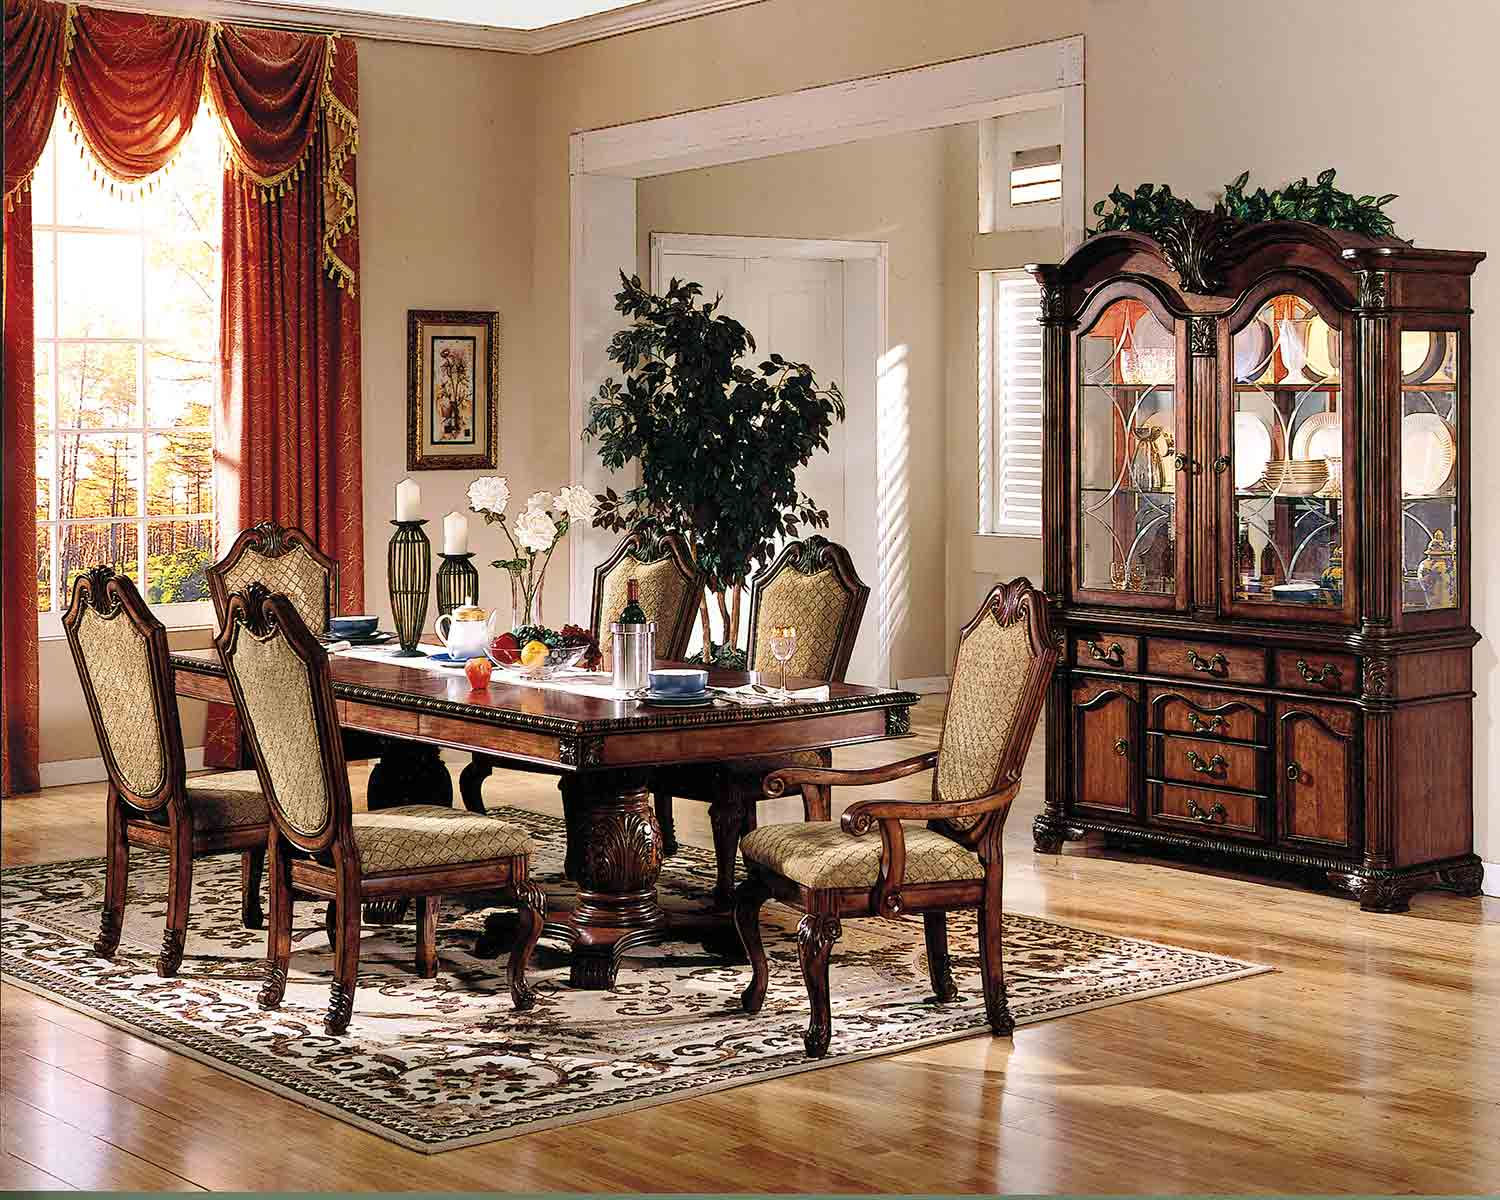 Acme Chateau De Ville Dining Set with Double Pedestal - Cherry